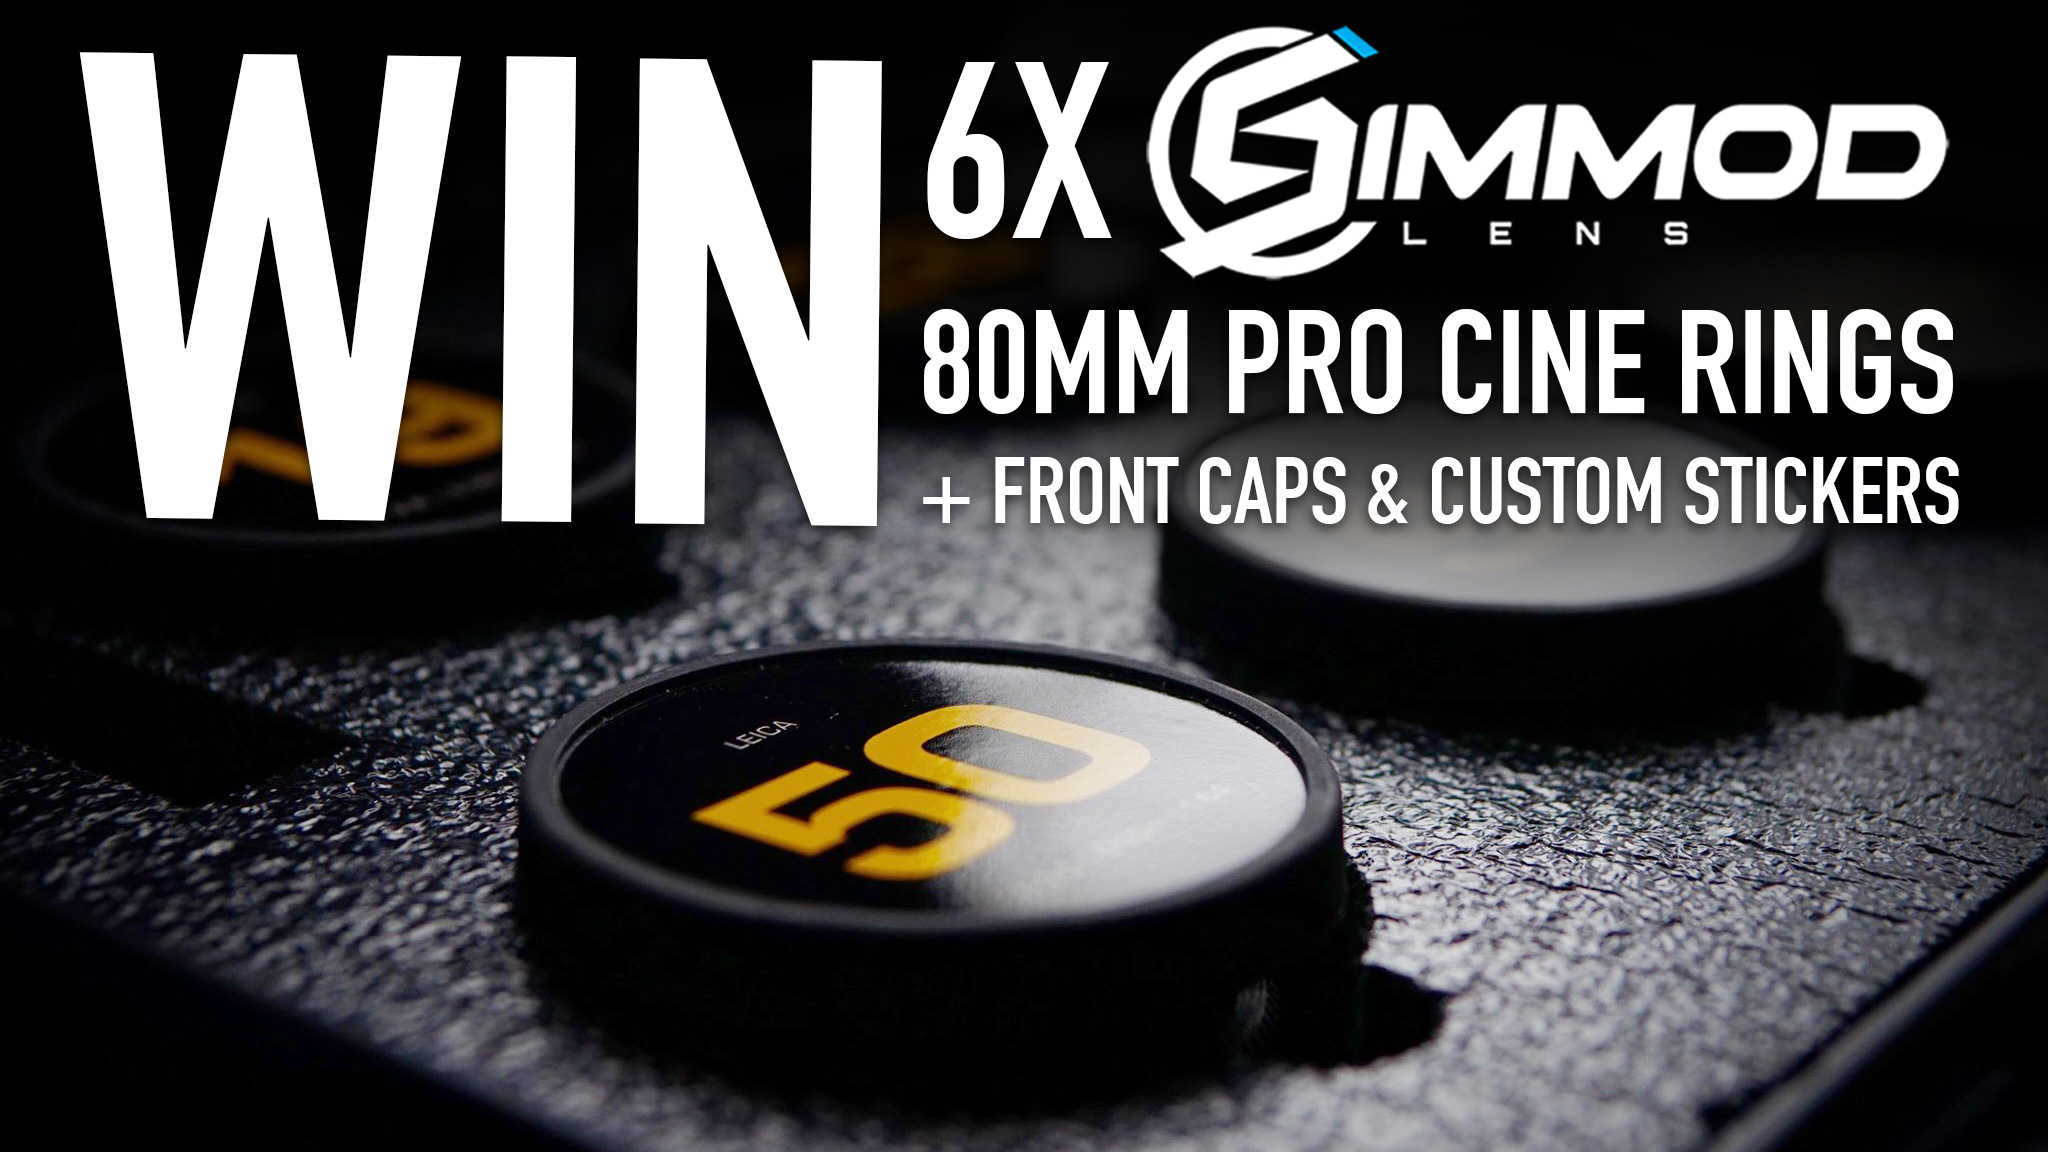 WIN 6x SIMMODLENS 80mm Pro Cine Rings + Caps + Custom Stickers